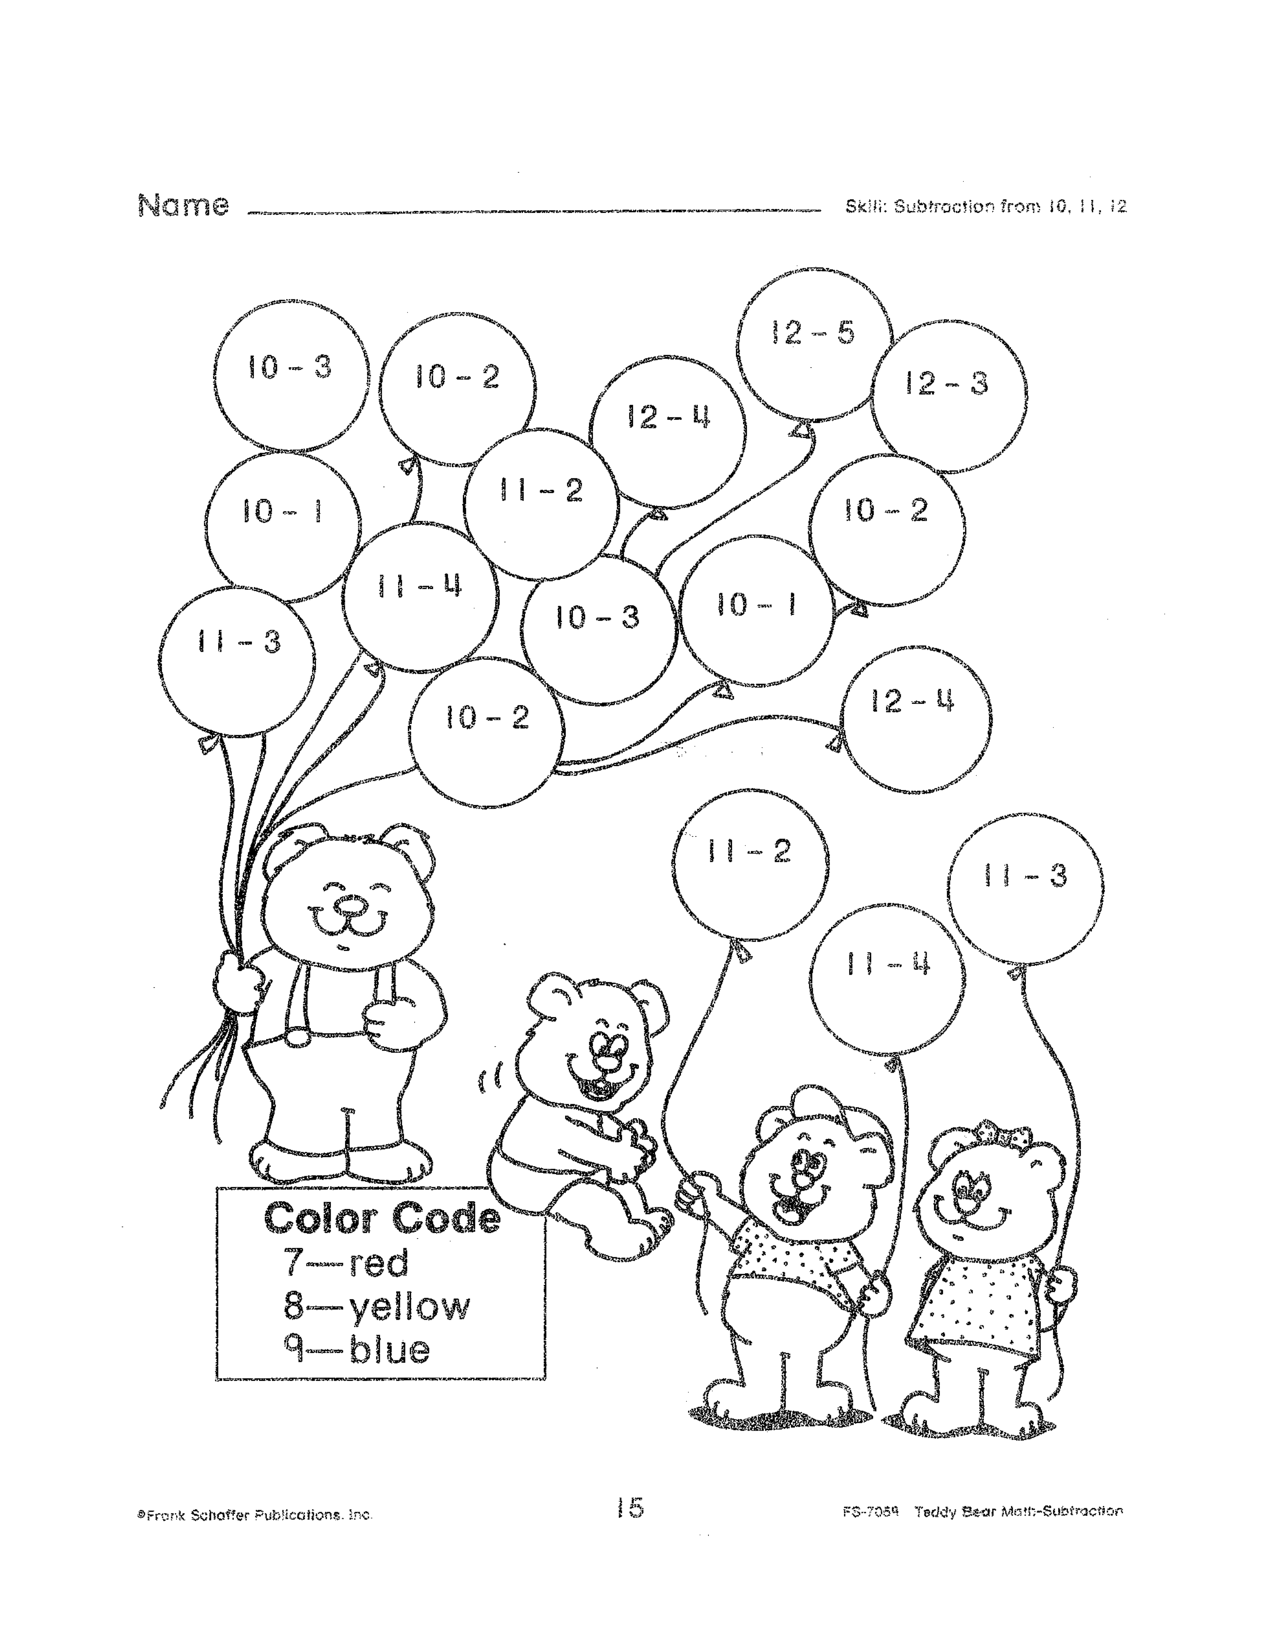 6th Grade Math Worksheets Printable – Free Math Worksheets Printable